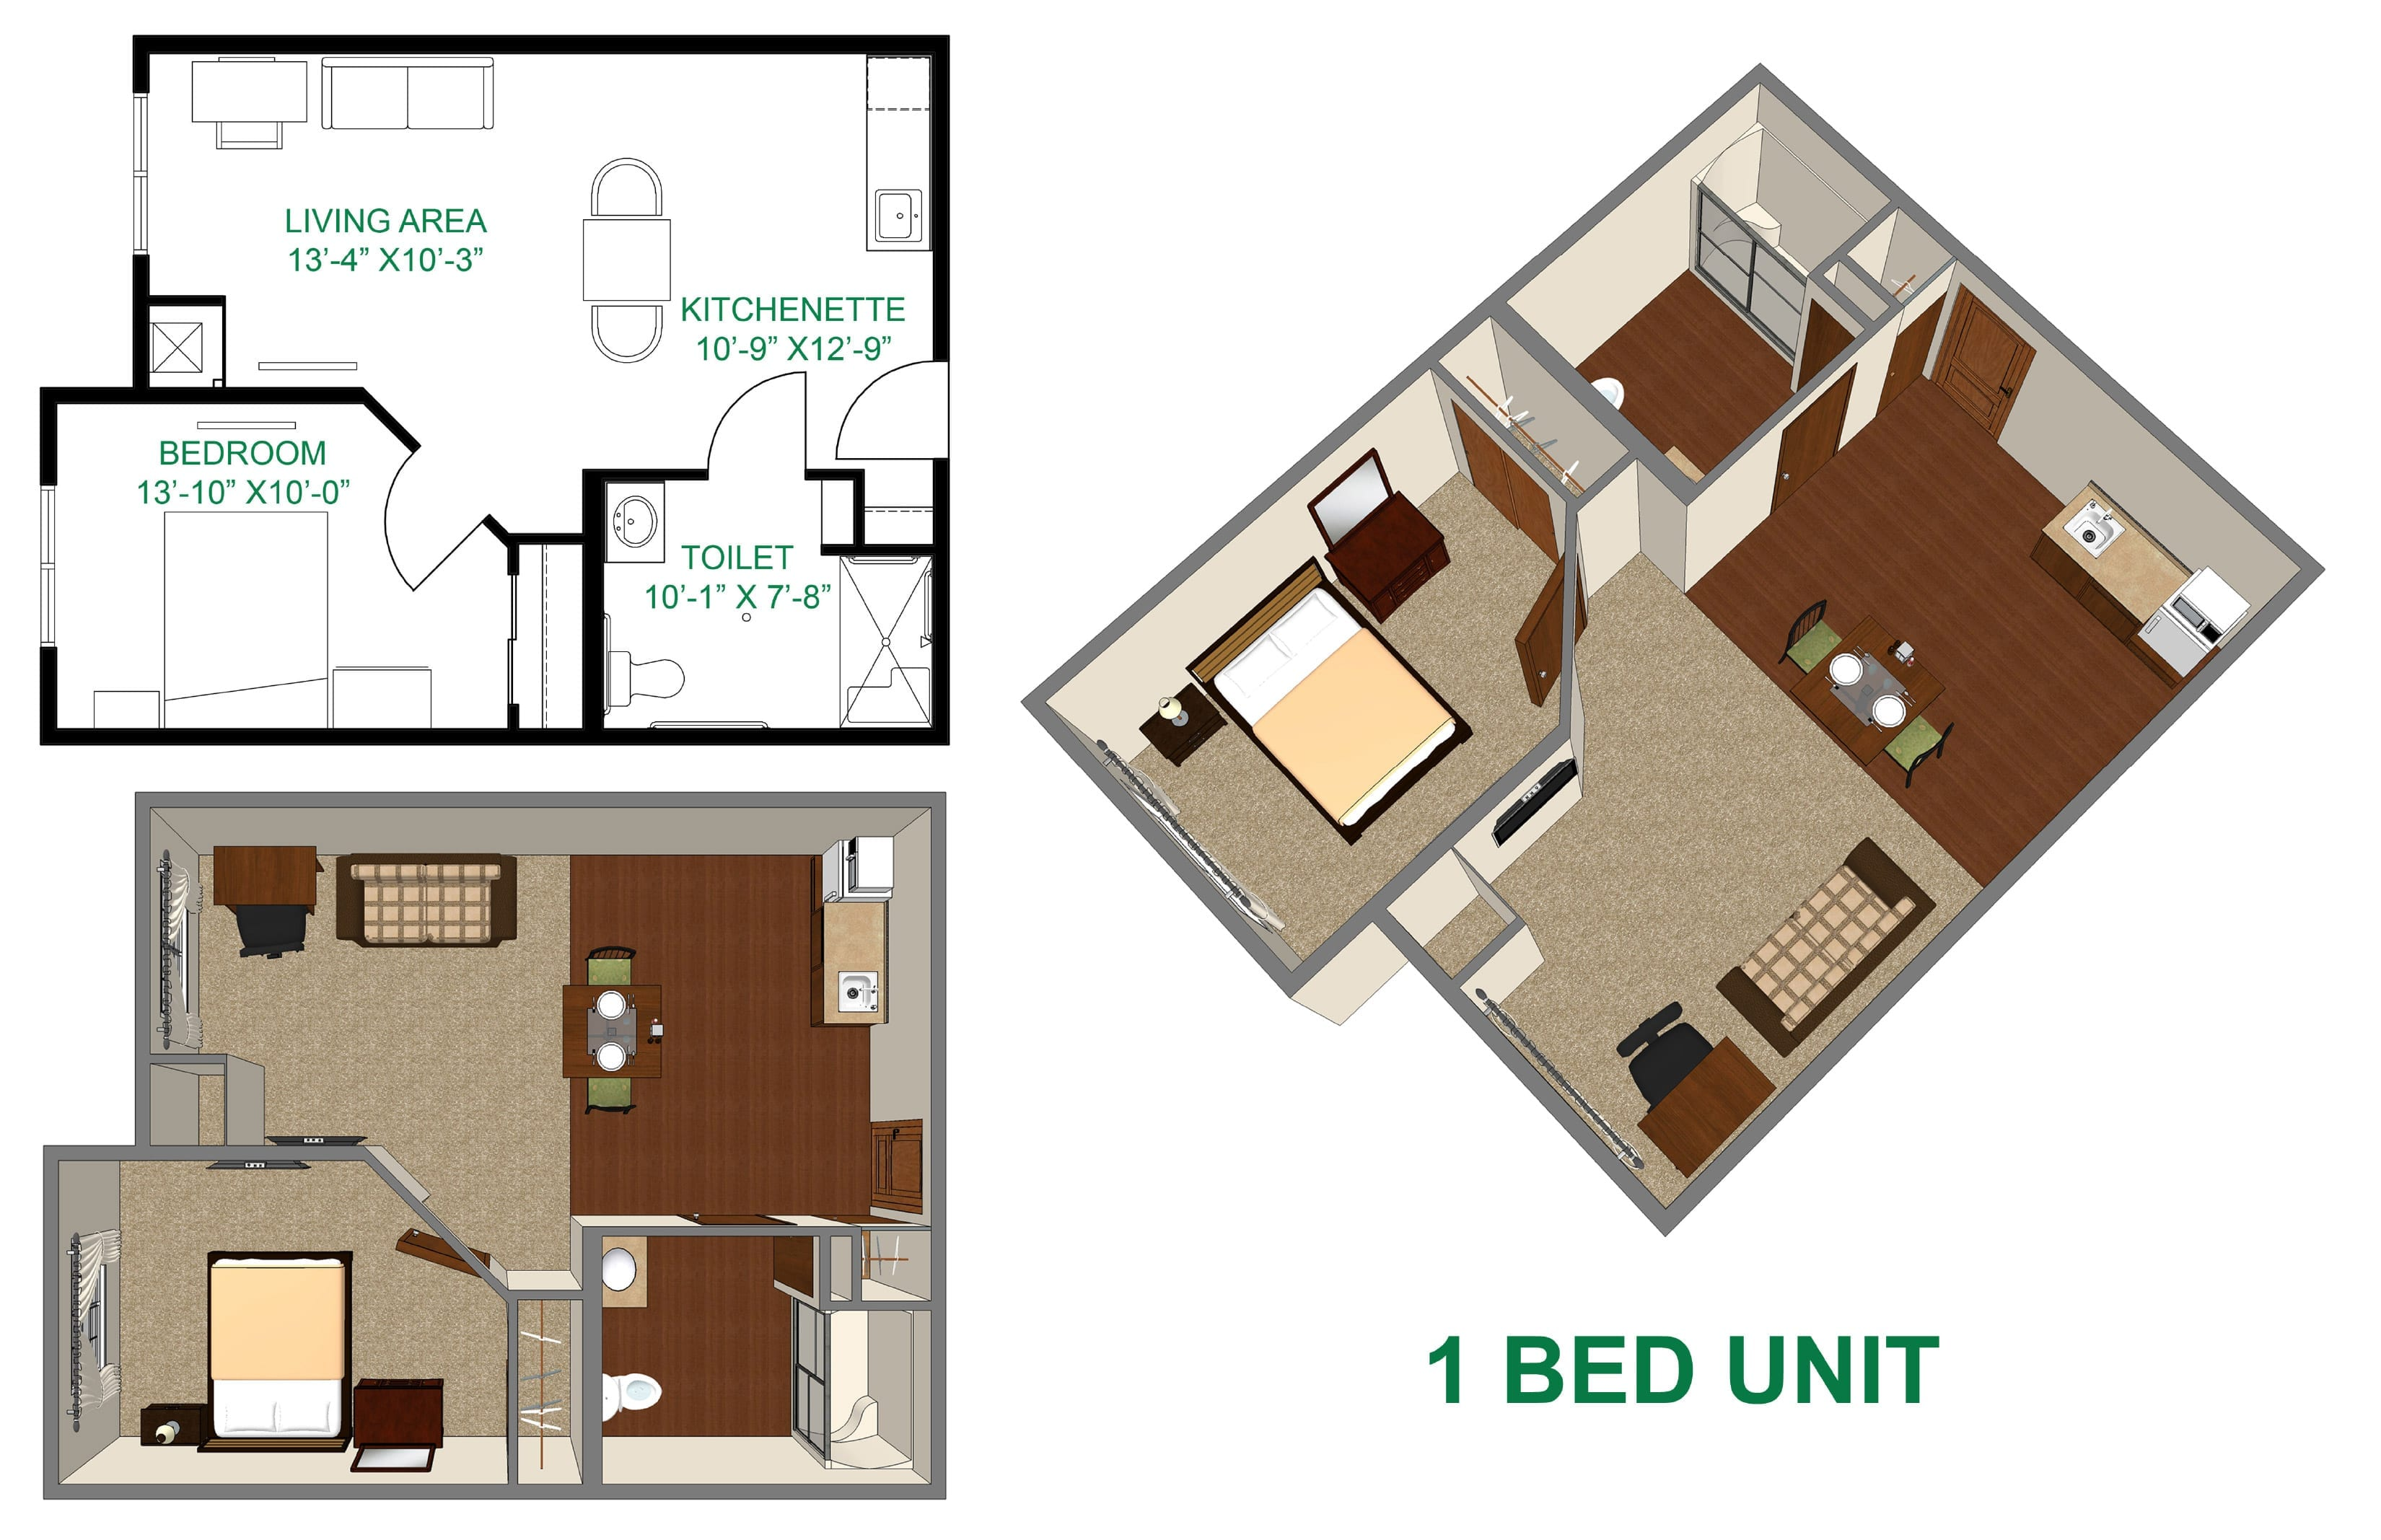 The Village at Skyline Pines assisted living 1 bedroom layout